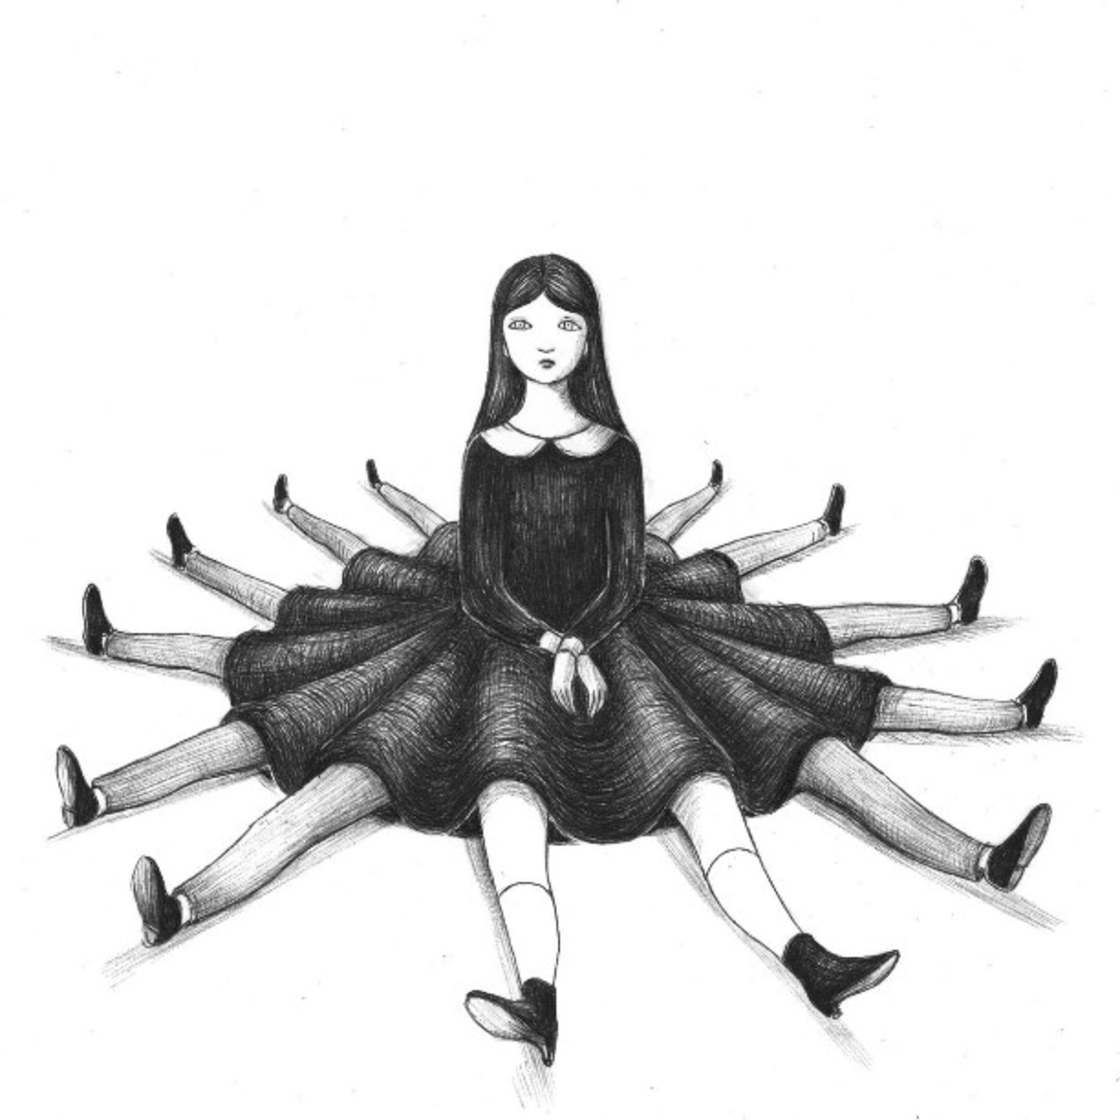 Sweet Darkness - Les illustrations de Virginia Mori